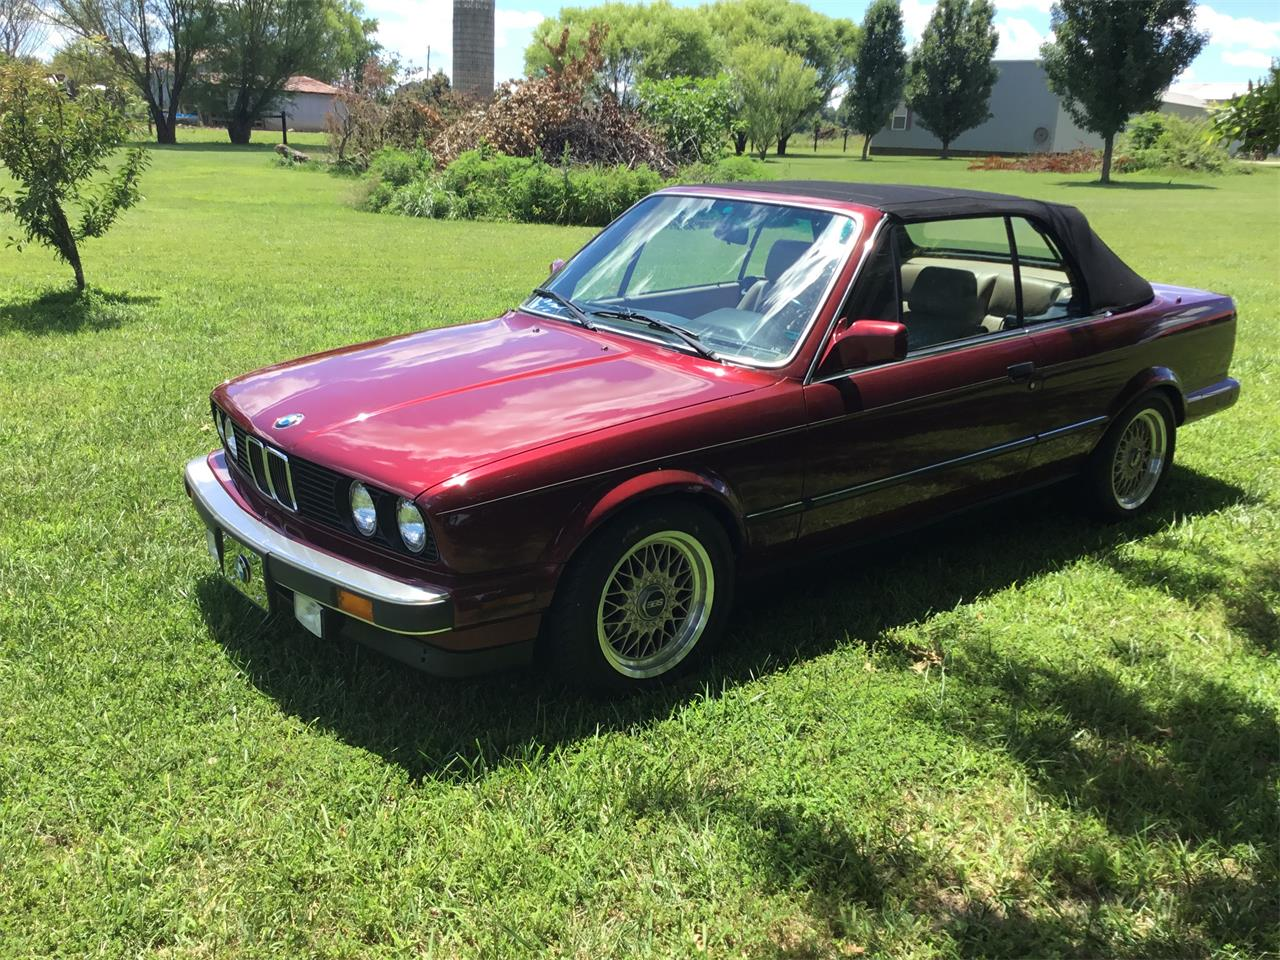 1990 BMW 325i for sale in Hodgeville, KY